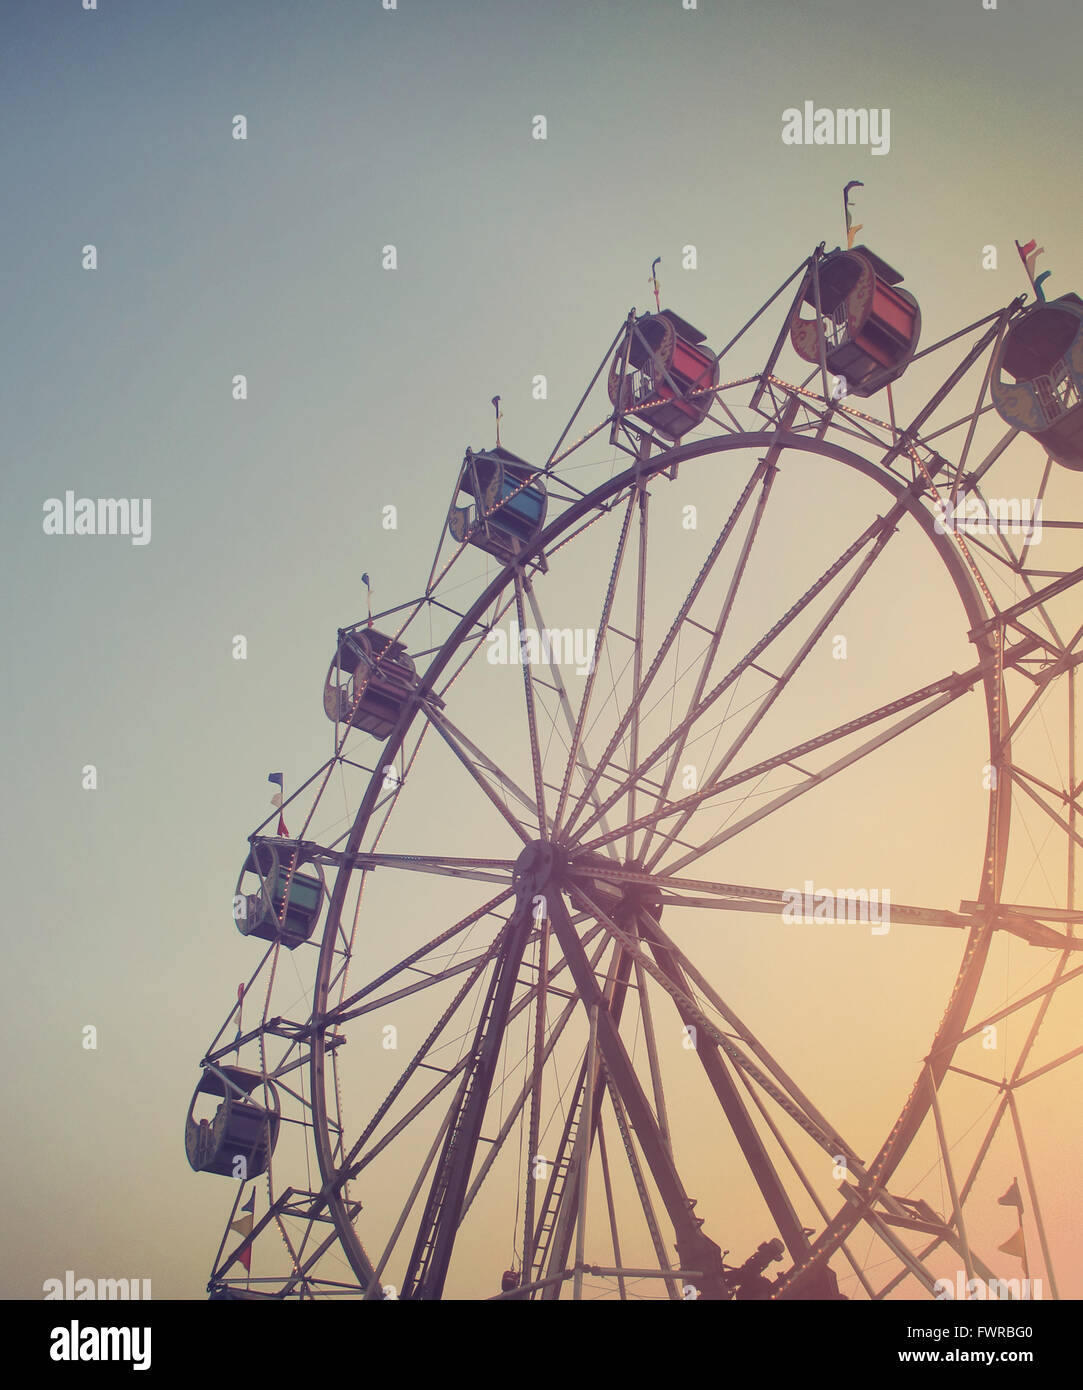 A Ferris wheel is spinning at a carnival at sunset for an artistic activity or summer memory concept. Stock Photo